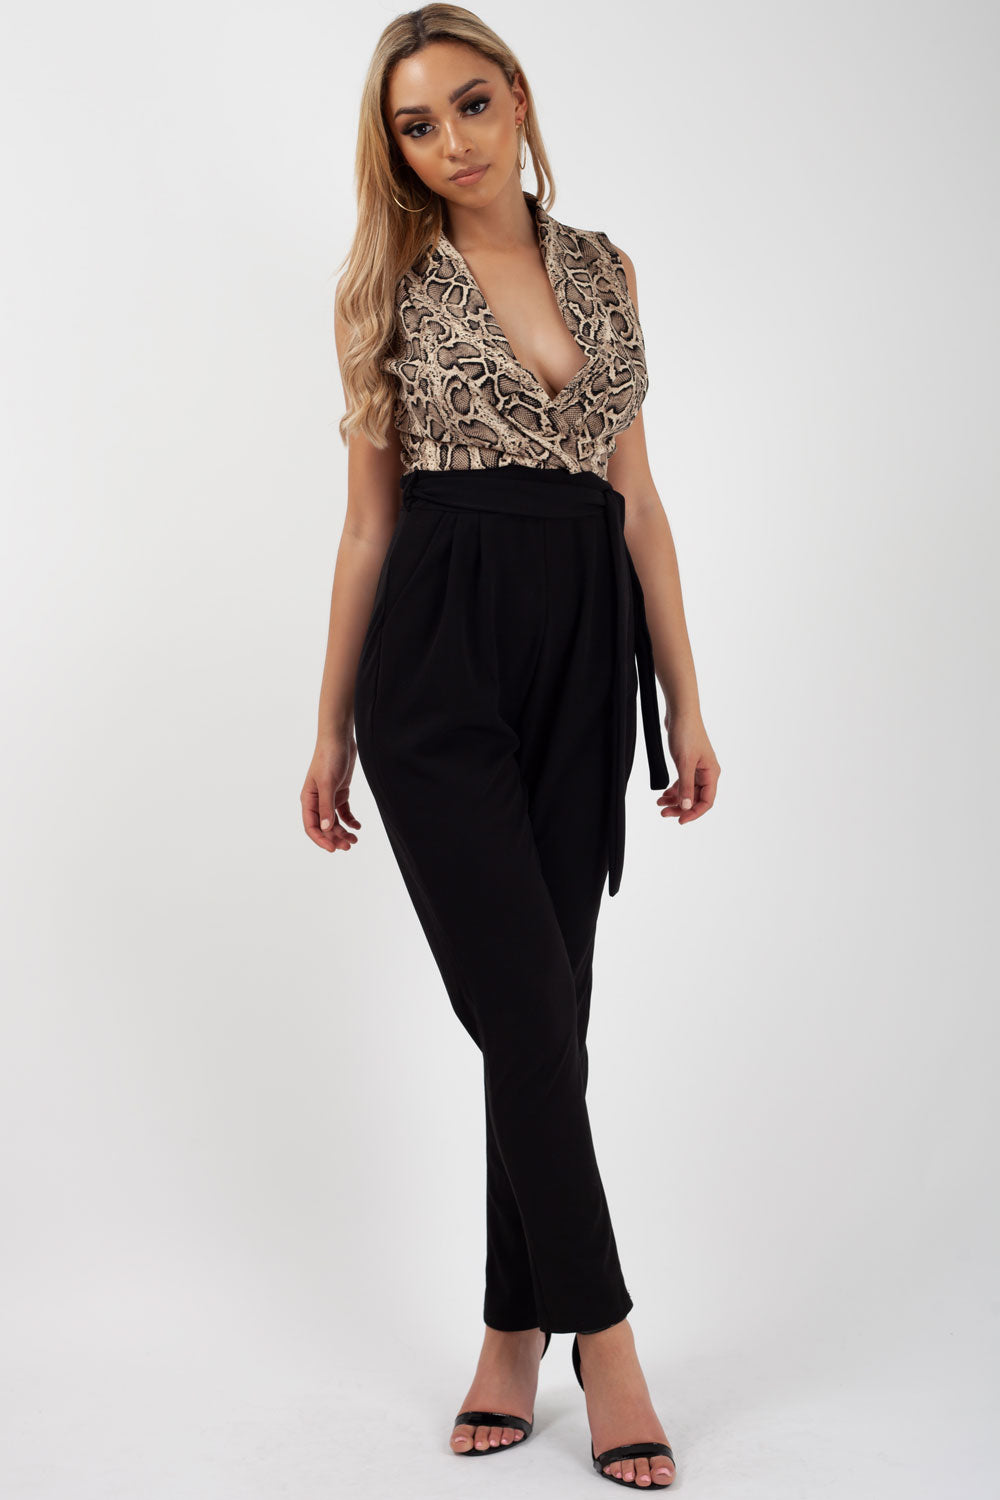 evening jumpsuit uk